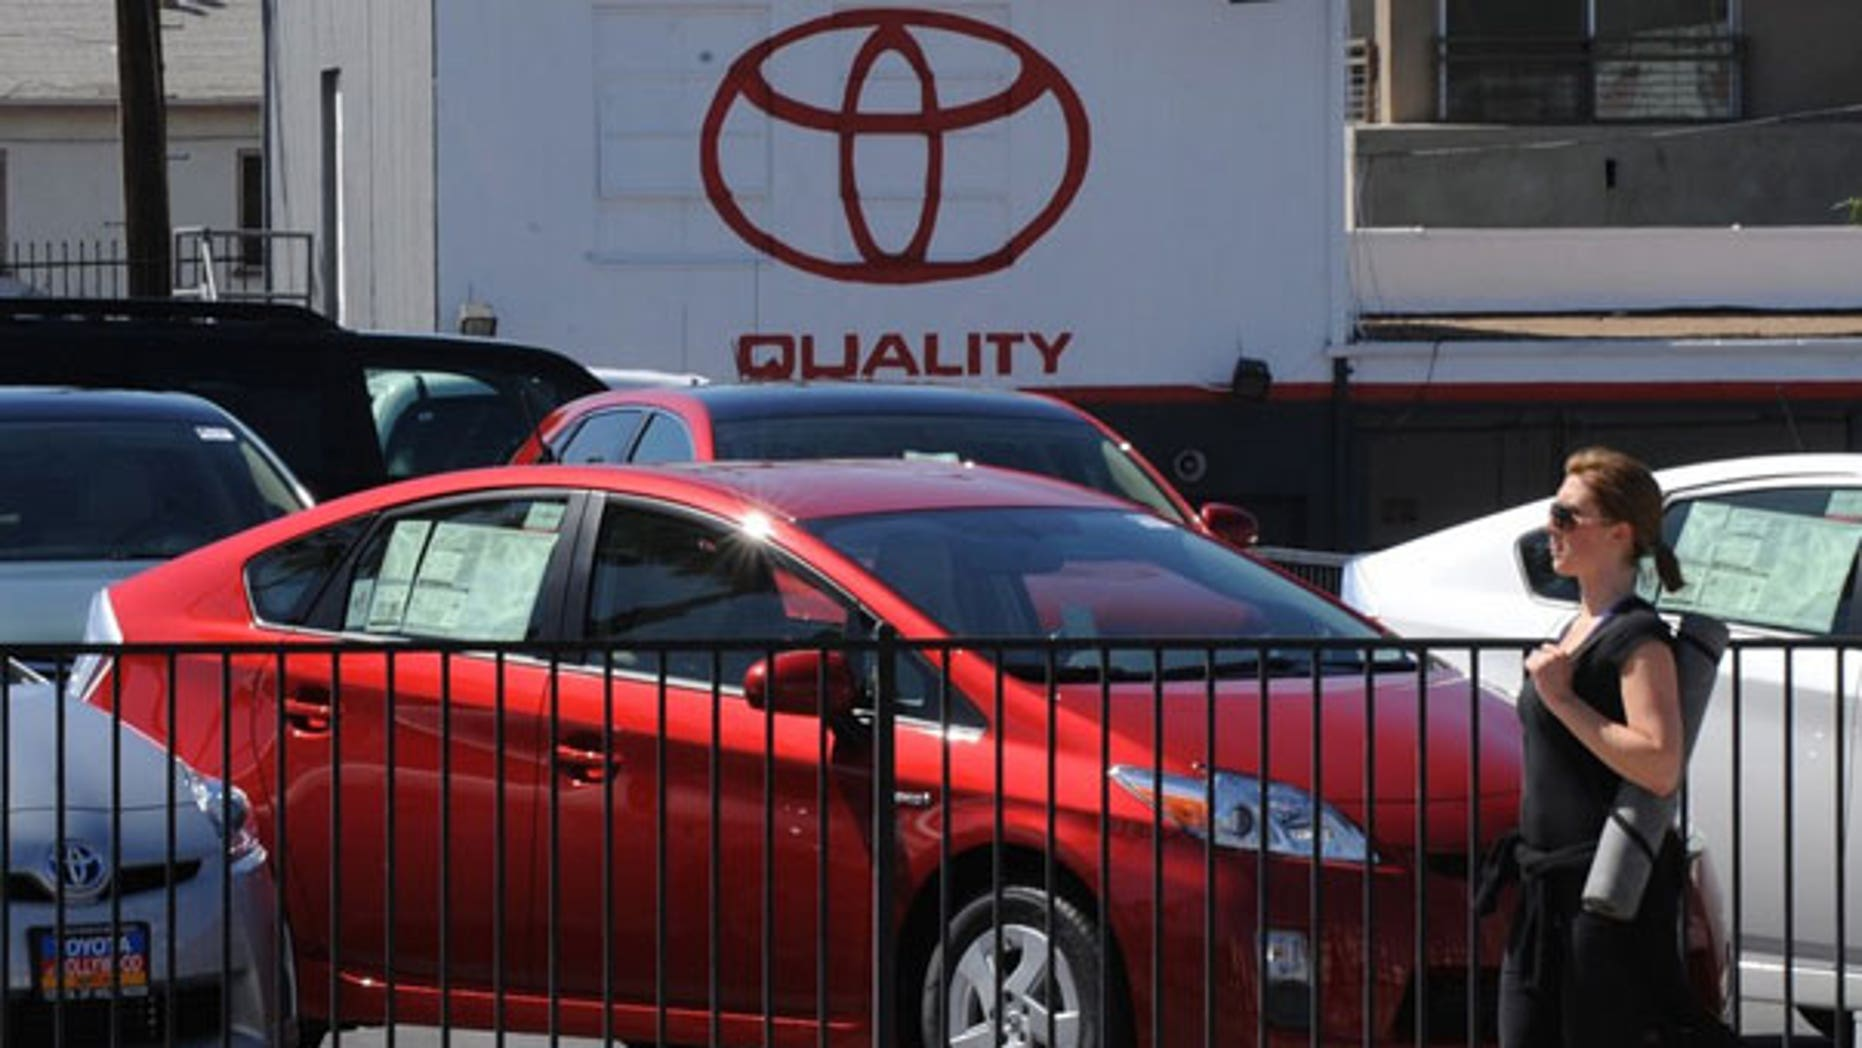 April 6: A woman walks past Toyota Prius cars for sale at a Toyota dealer in Hollywood. (AFP)